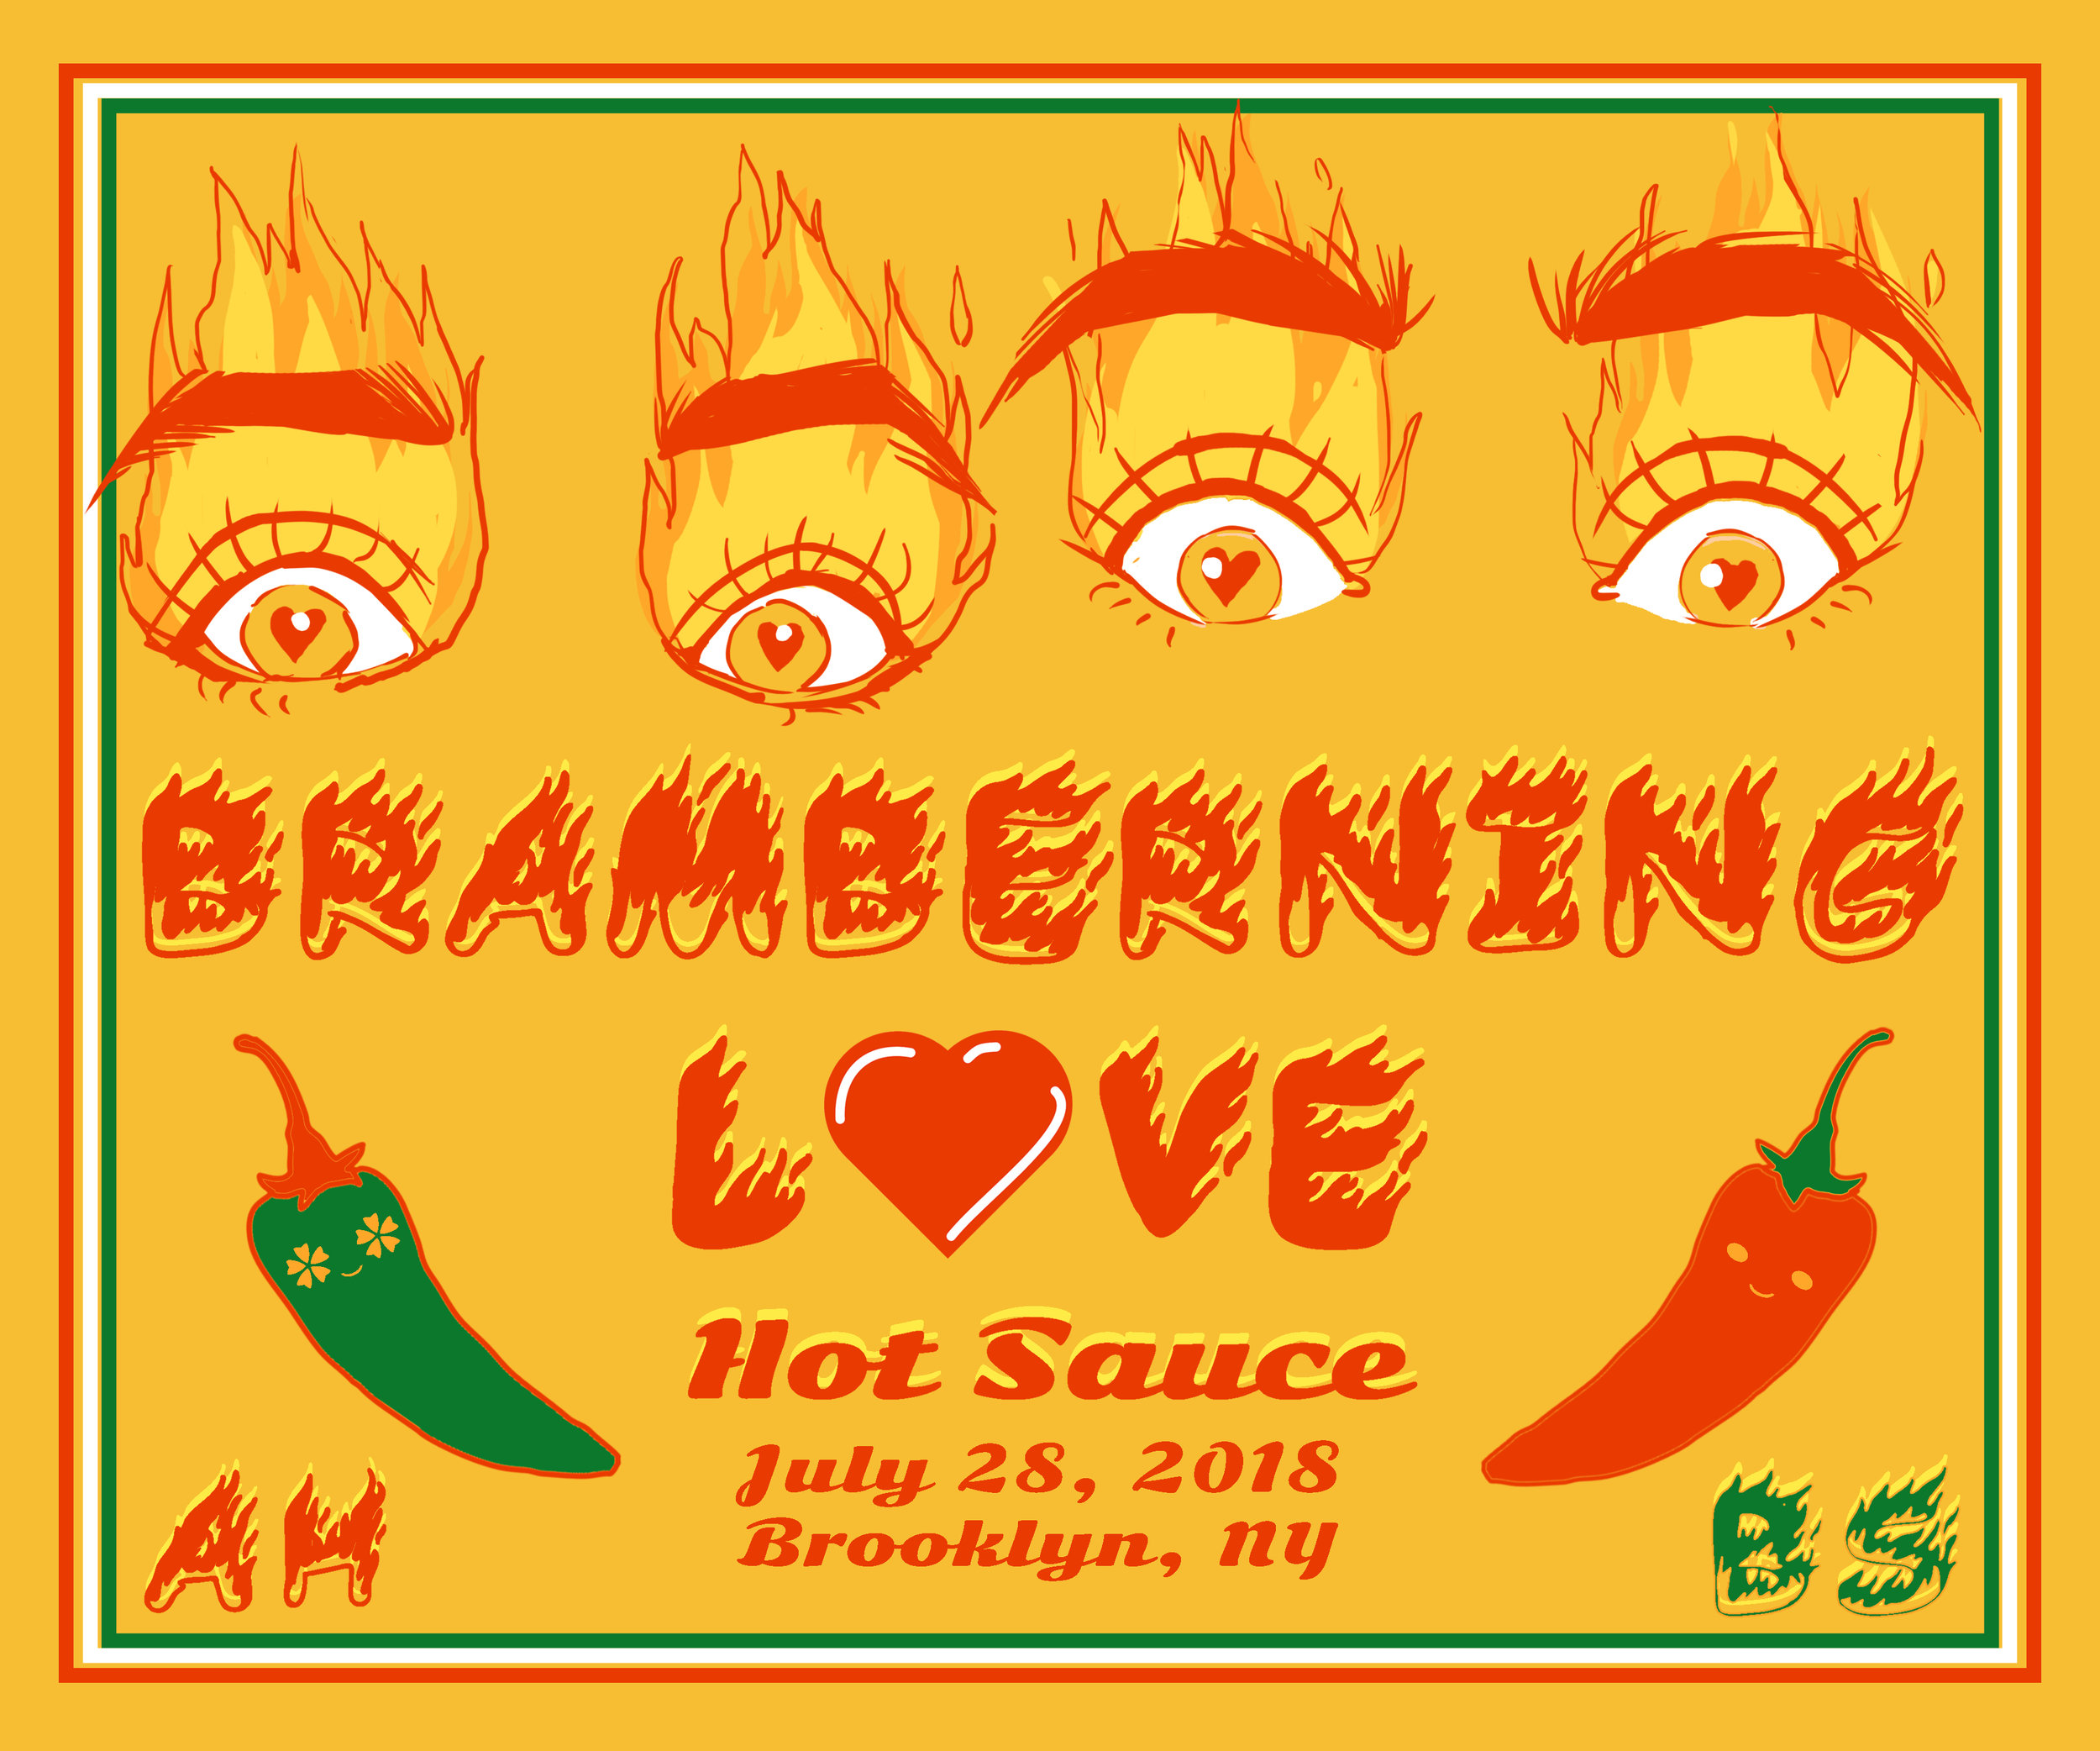 Bramber 2018 Hot Sauce Label 2.jpg